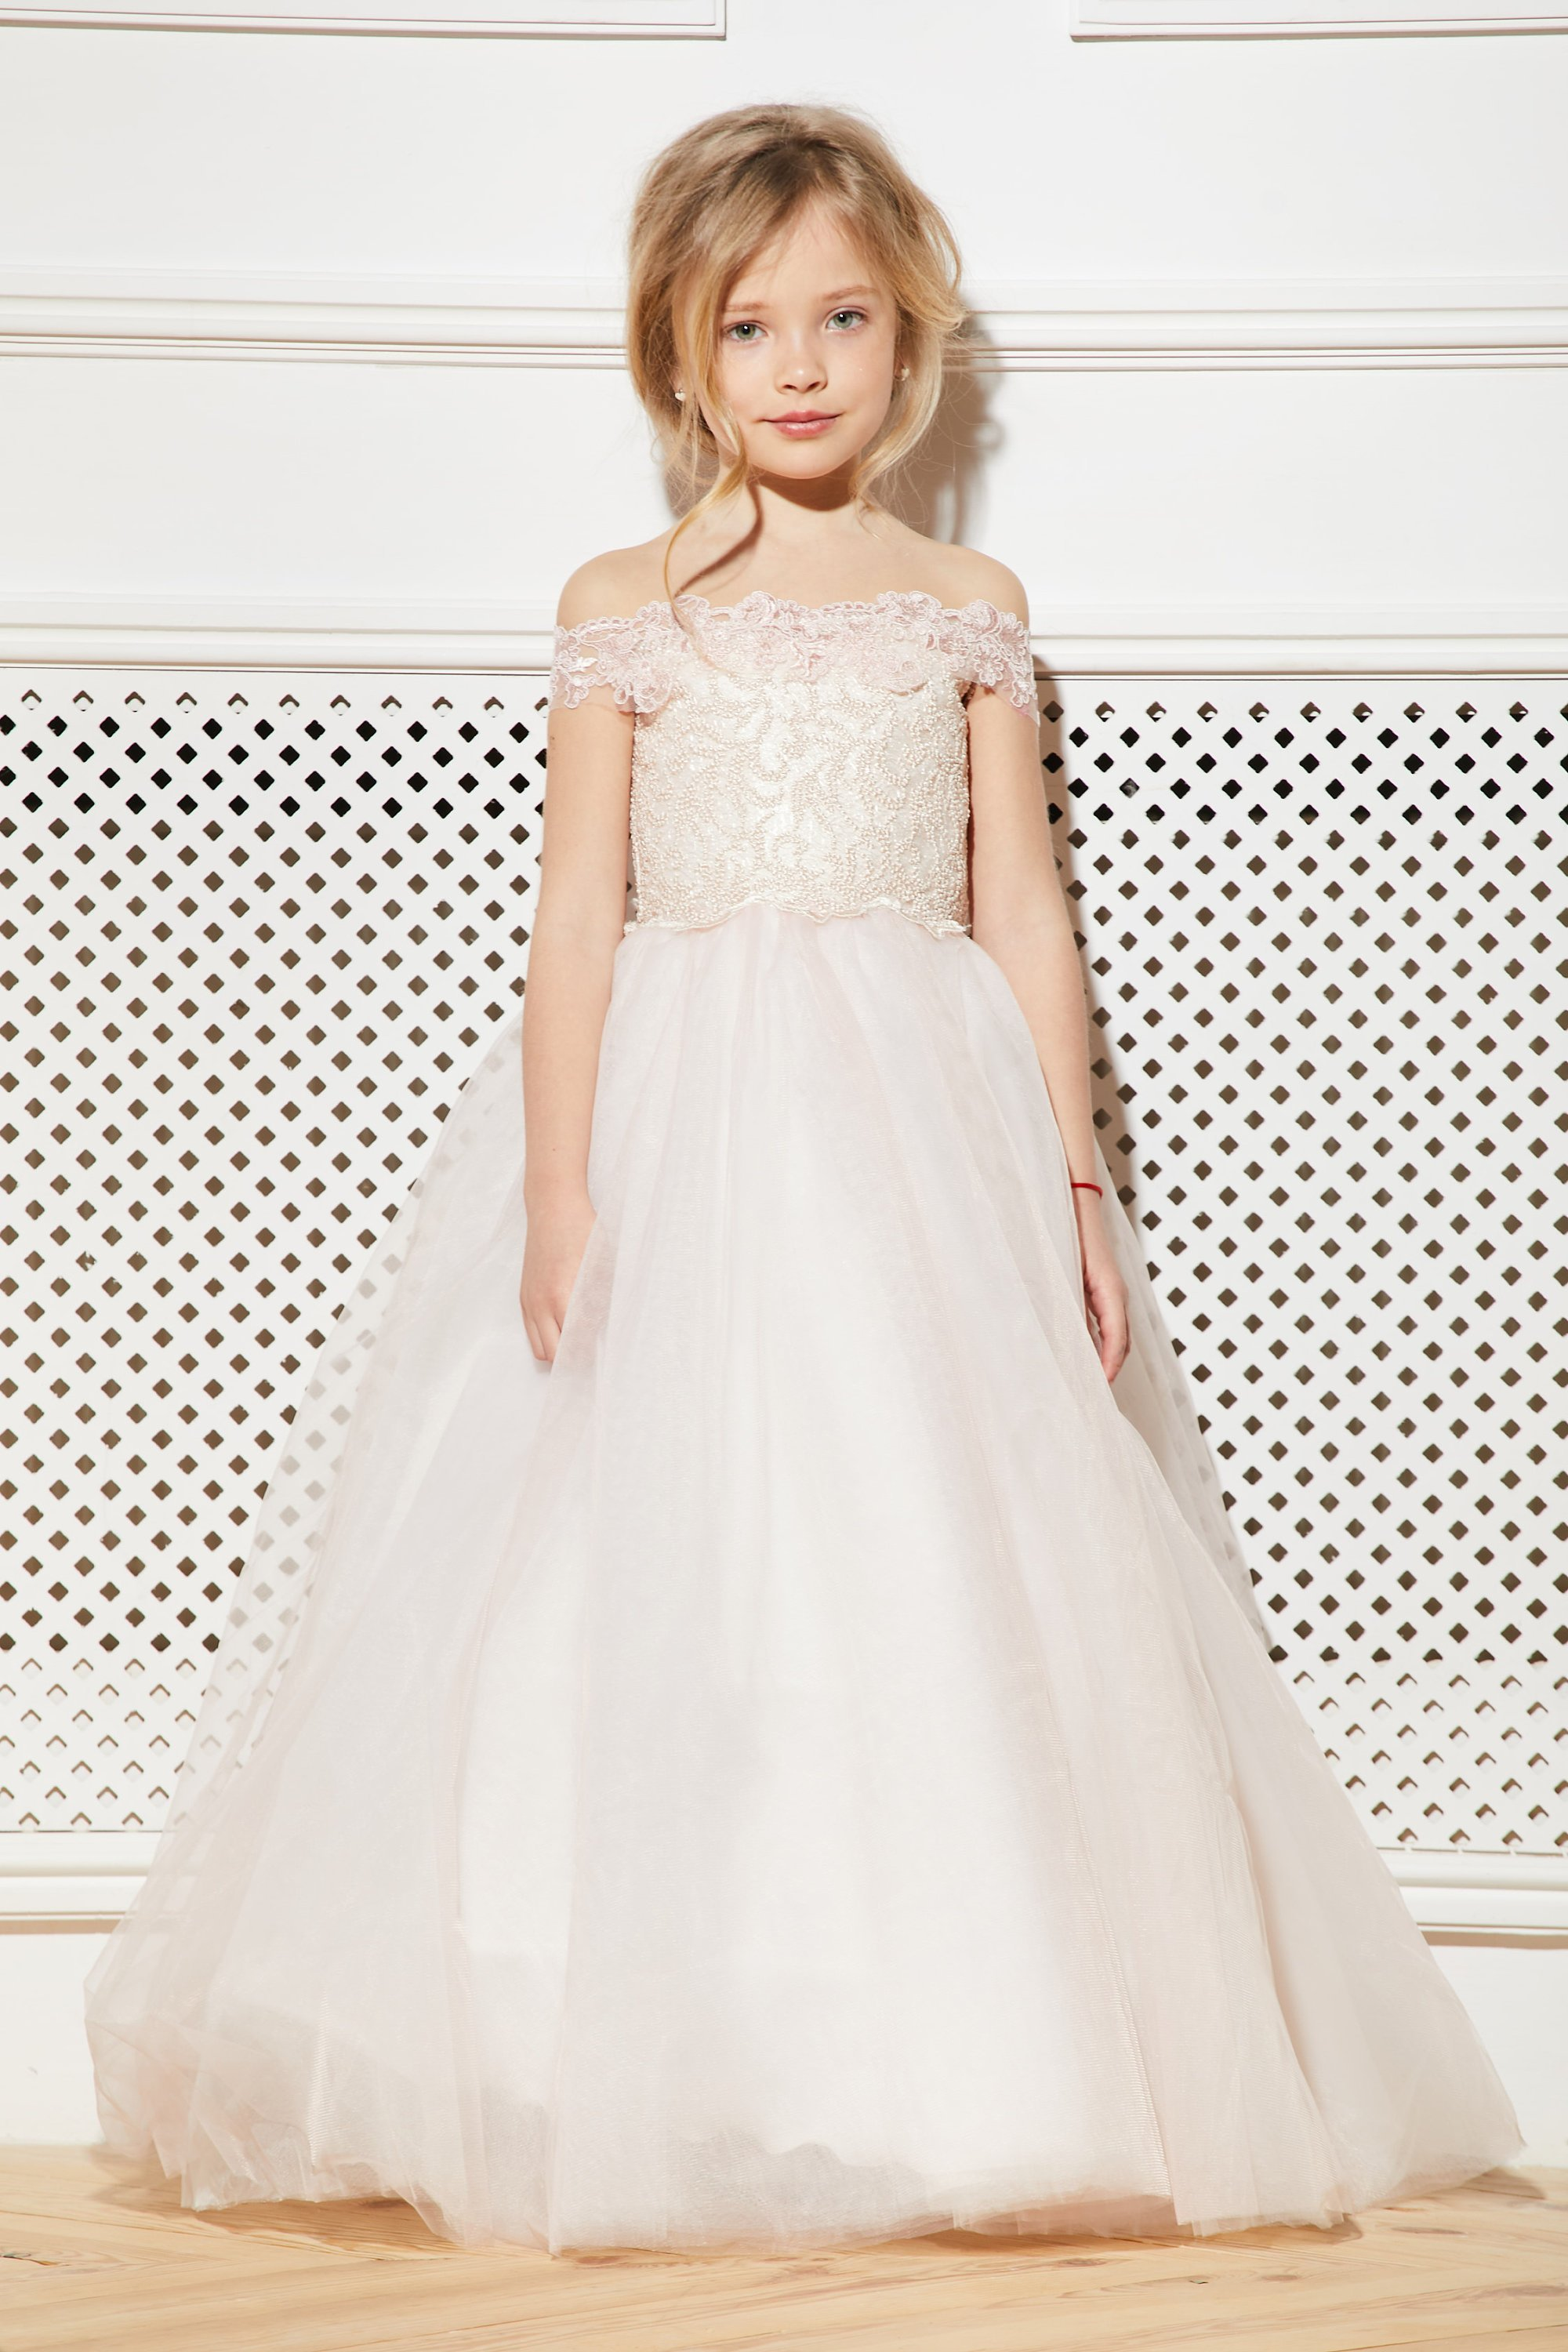 Blush Flower Girl Dress Cream Tulle Rose.jpg